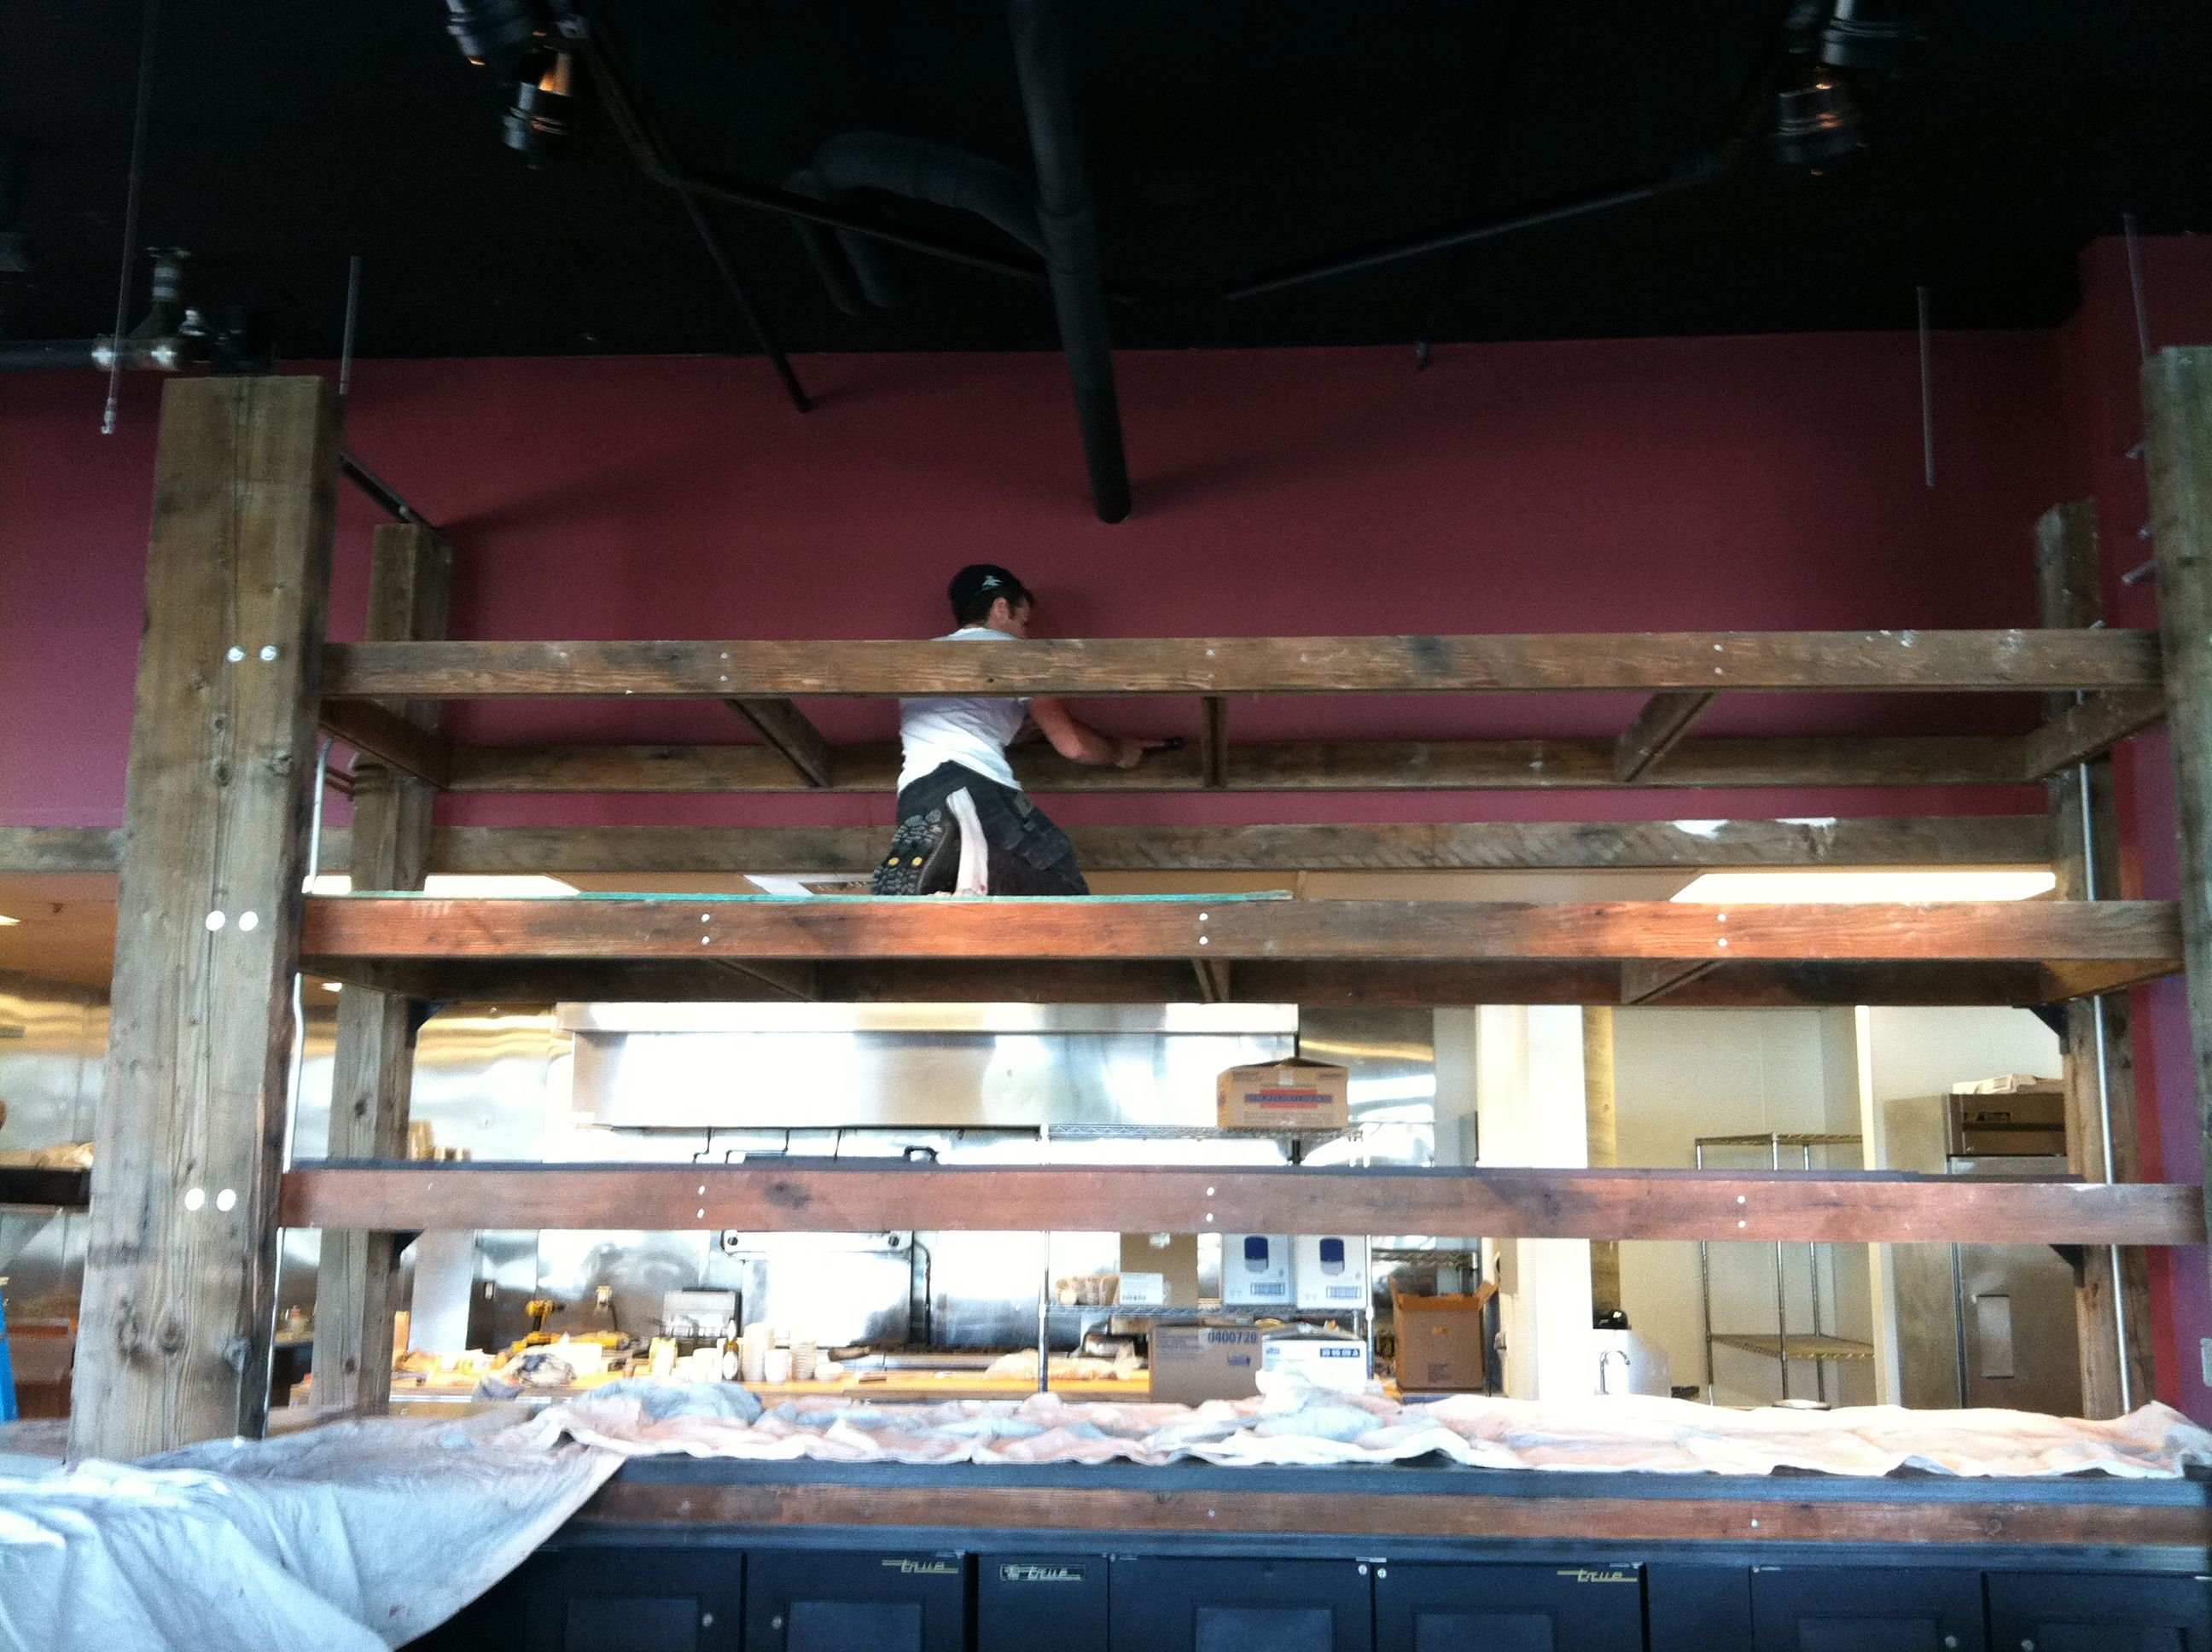 Pin by philip panagos on the social bar and grill tacoma pinterest